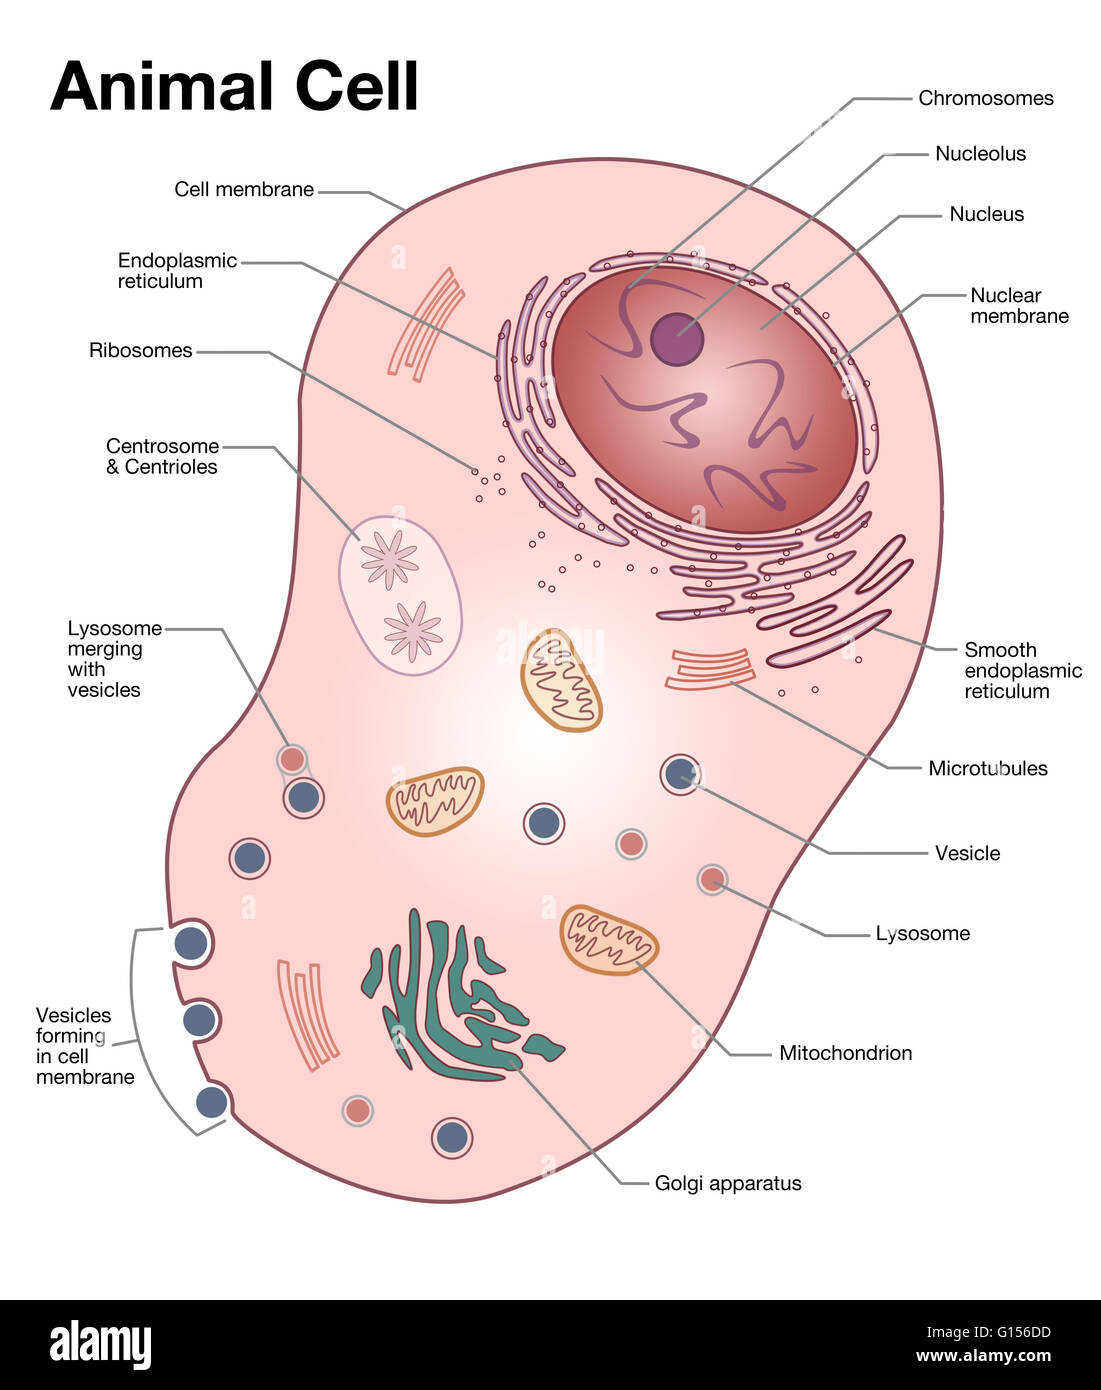 hight resolution of diagram of a typical animal cell with the important features labeled